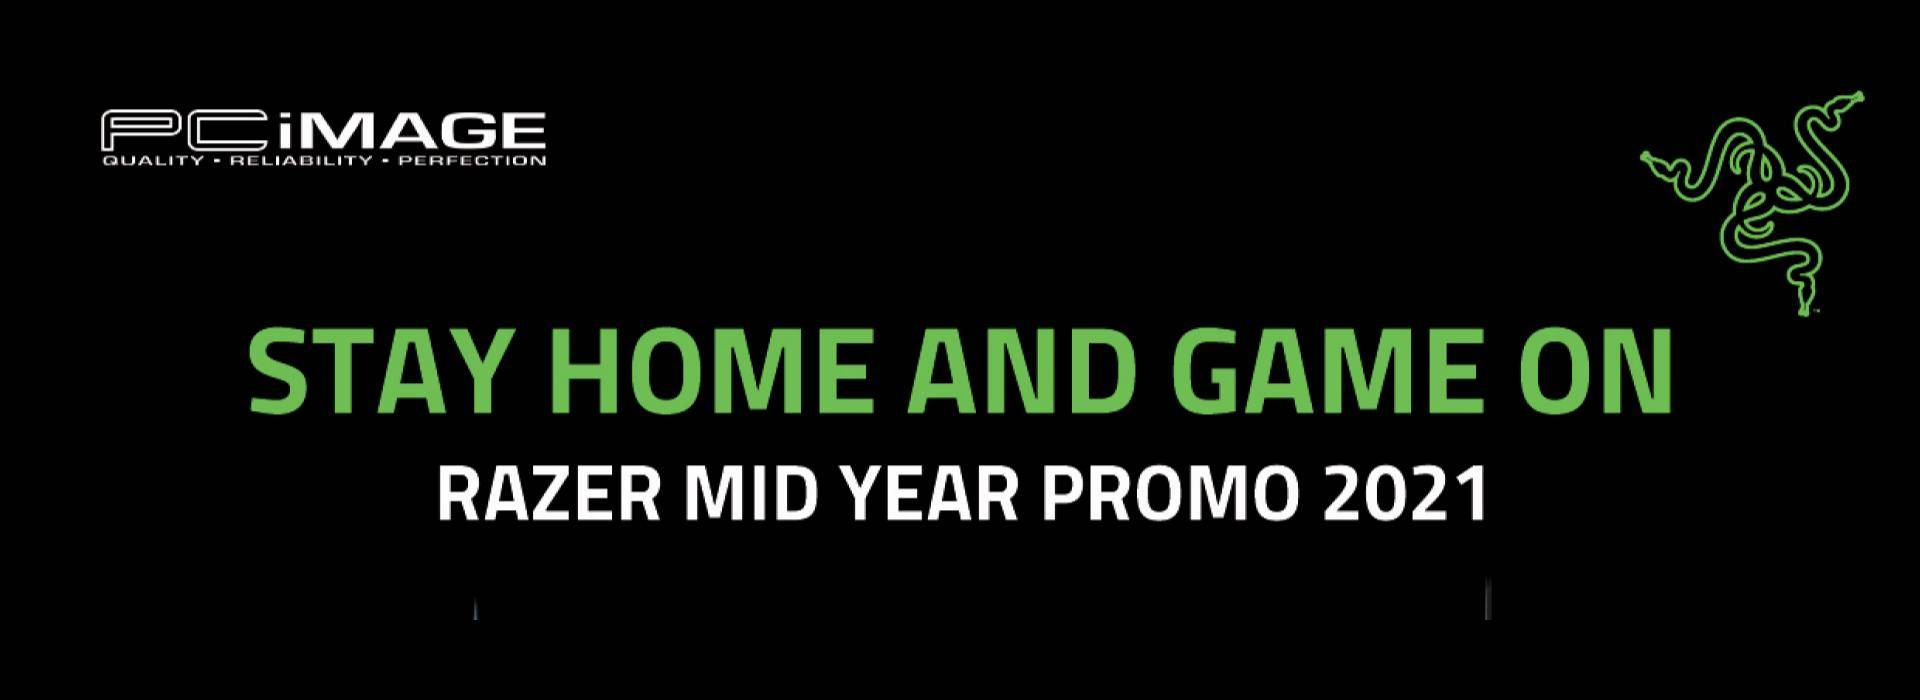 Razer Stay Home & Game On 30 June